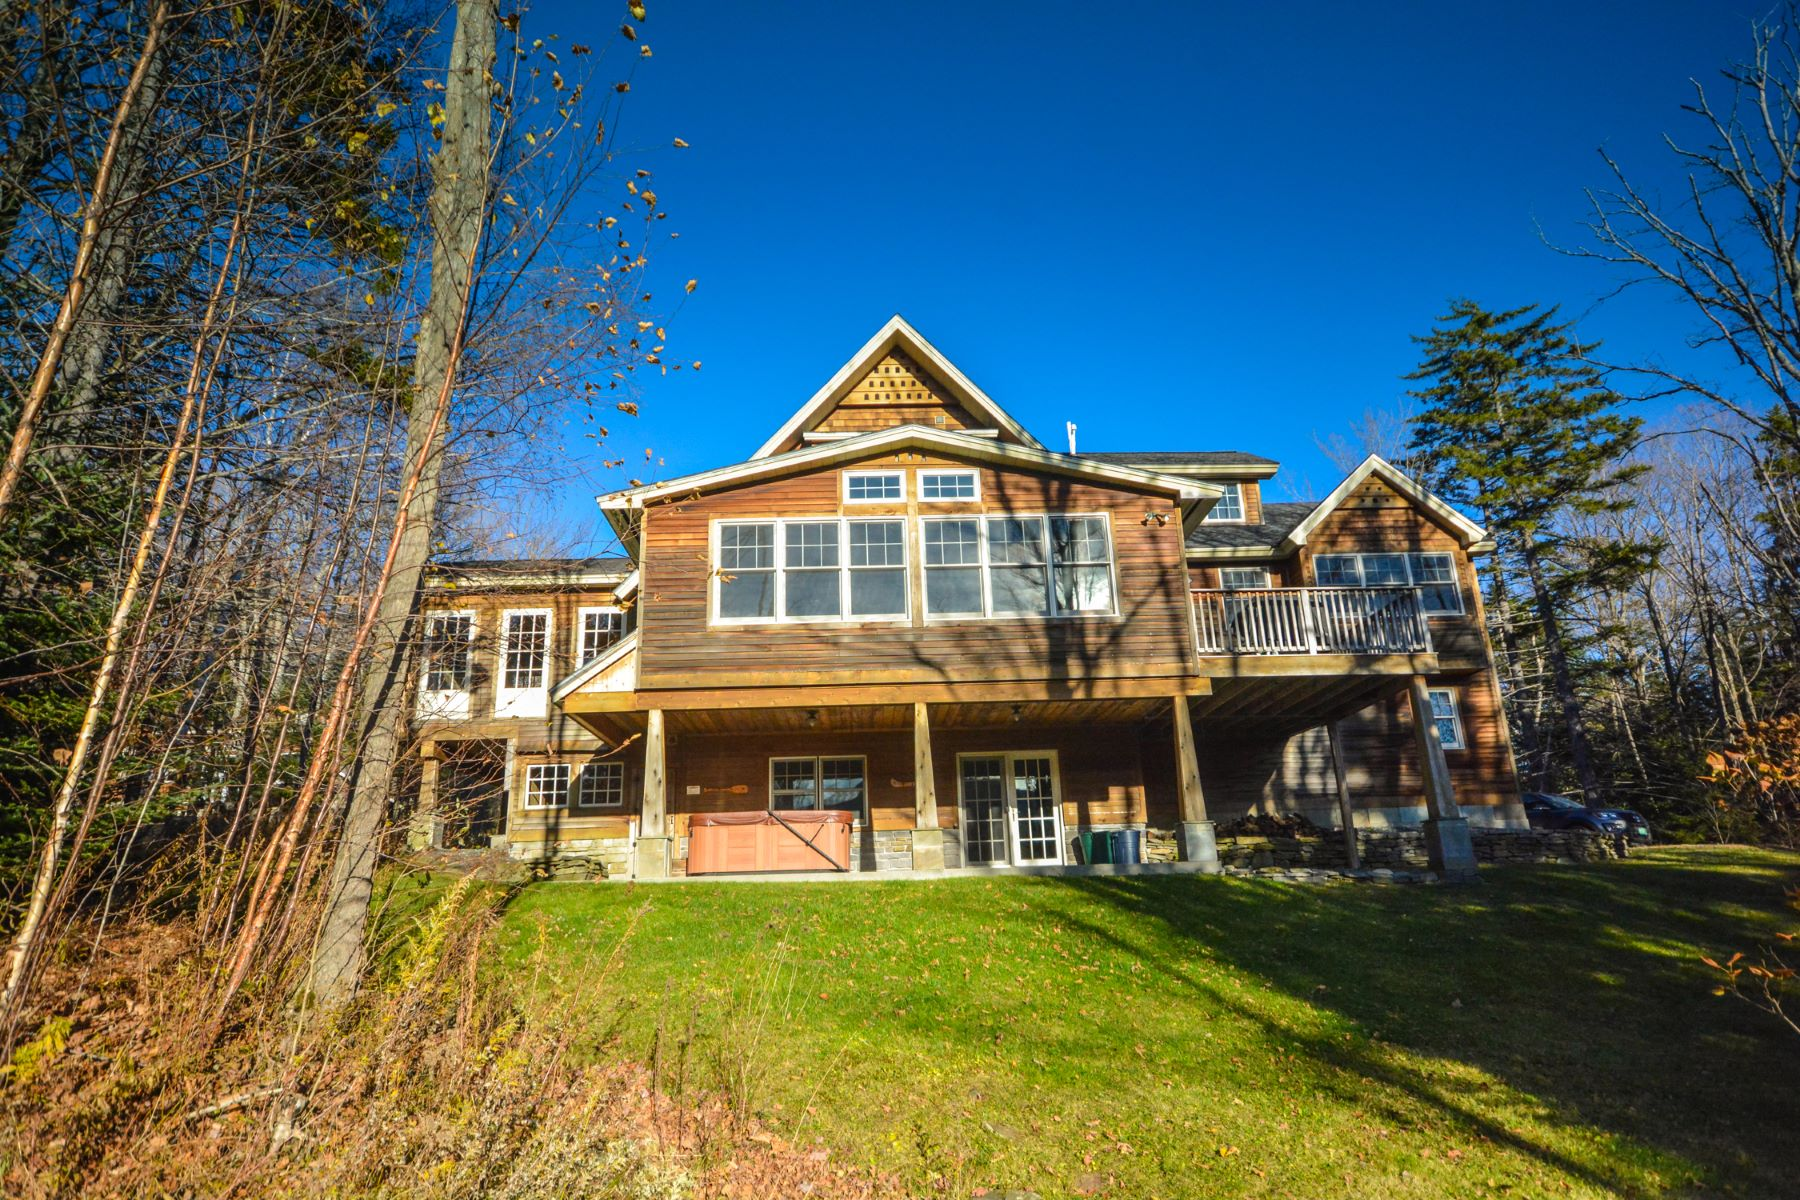 Single Family Home for Sale at Amazing Mount Snow Access and Views 9 Lower Highlands Rd Dover, Vermont, 05356 United States